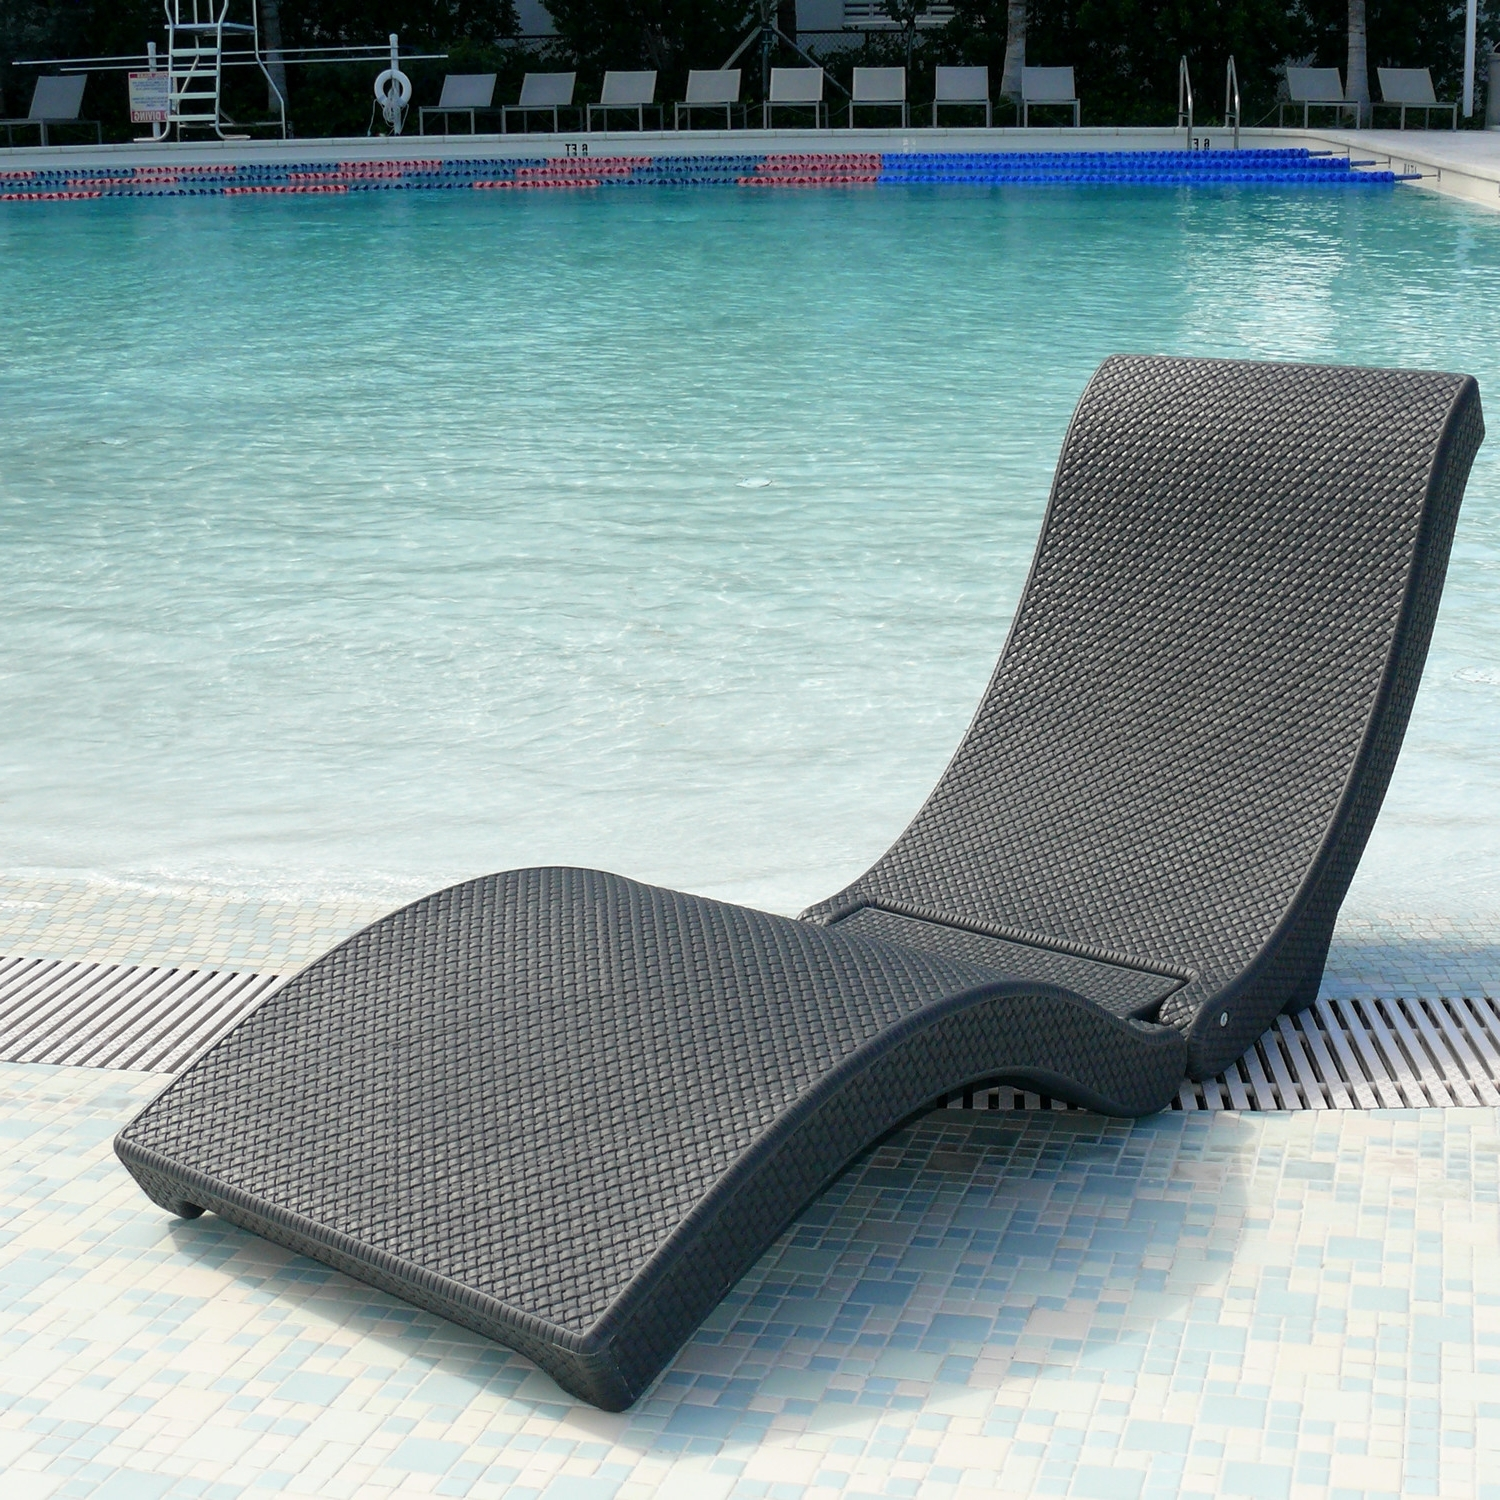 Pinterest For Current Hotel Pool Chaise Lounge Chairs (View 14 of 15)